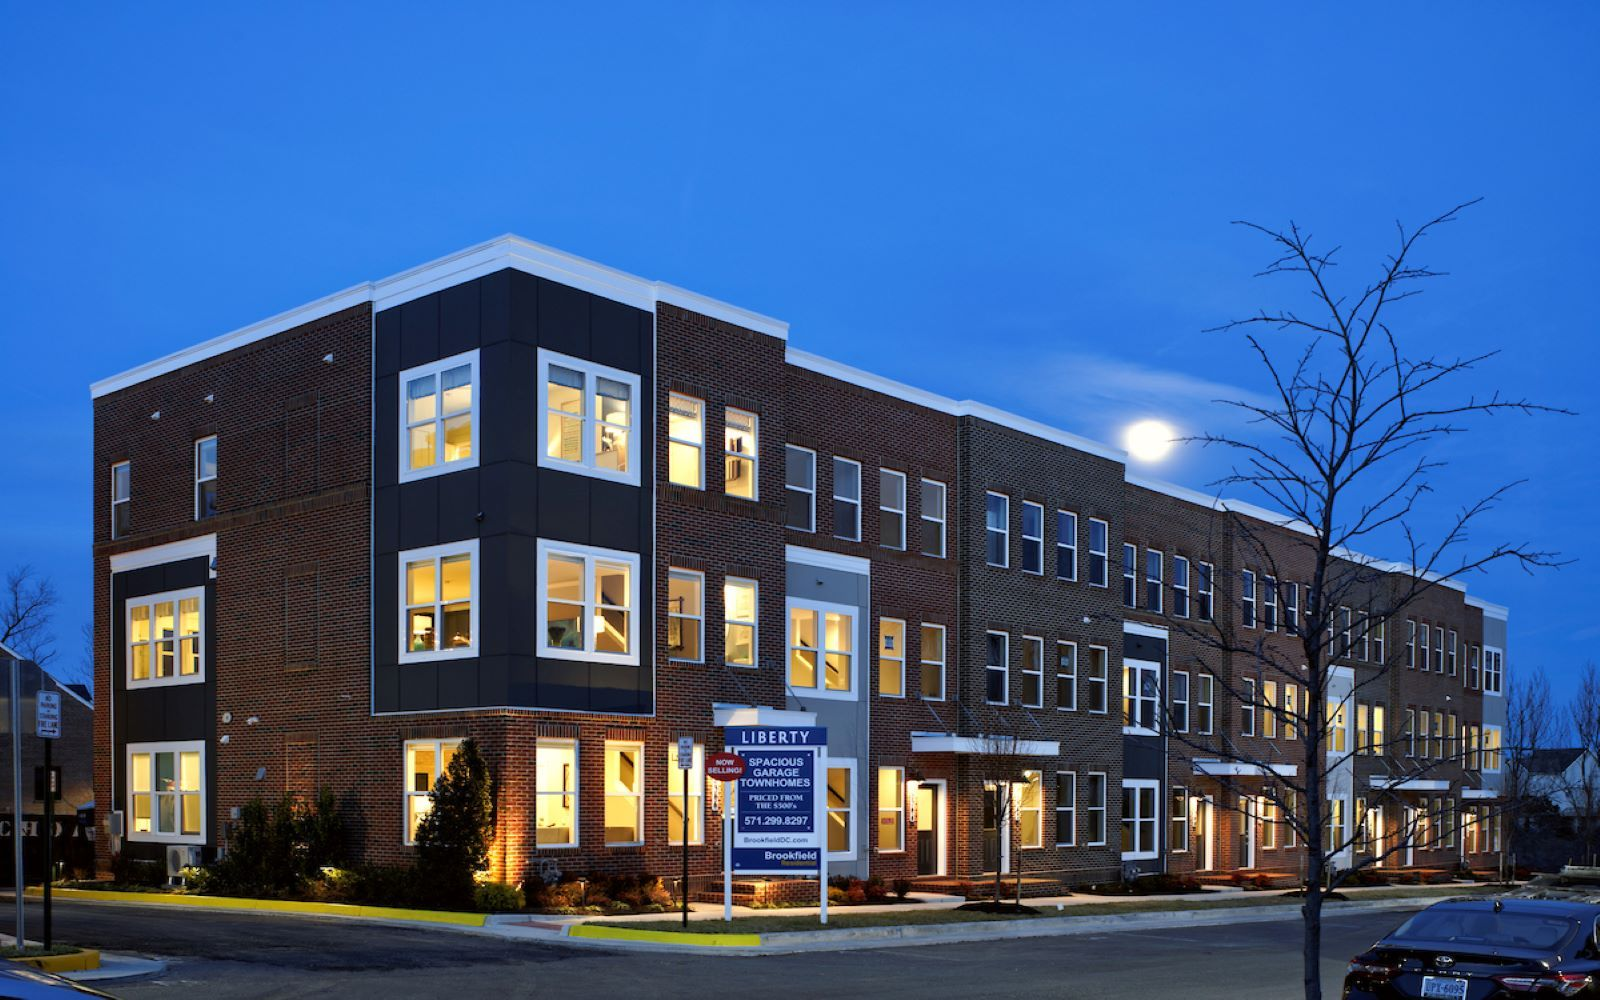 Exterior:An evening view of a row of homes by Brookfield Residential at Liberty in Lorton VA